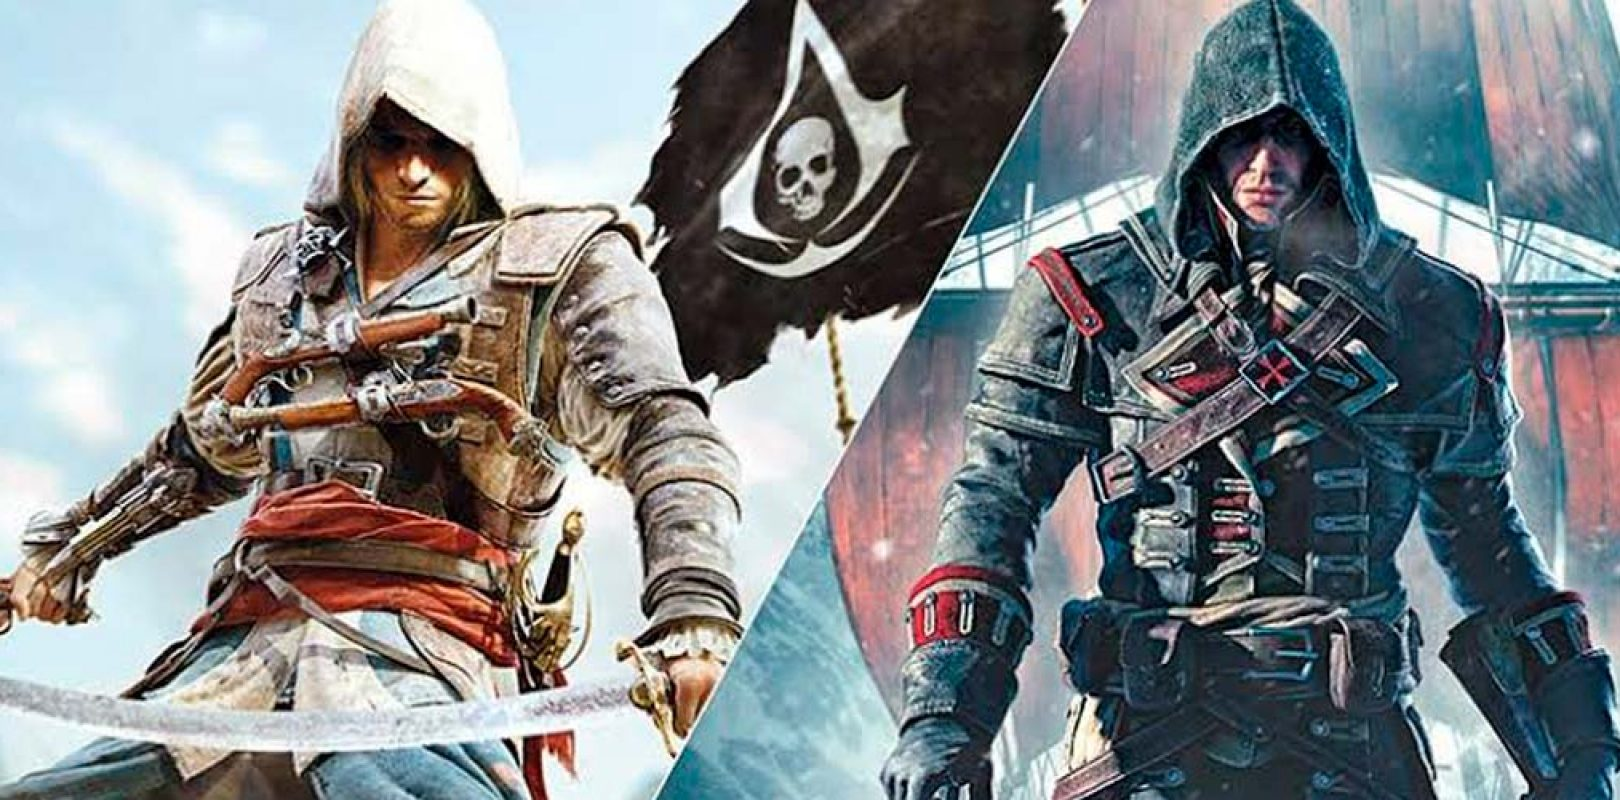 ASSASSIN'S CREED® THE REBEL COLLECTION AHORA DISPONIBLE PARA NINTENDO SWITCHTM